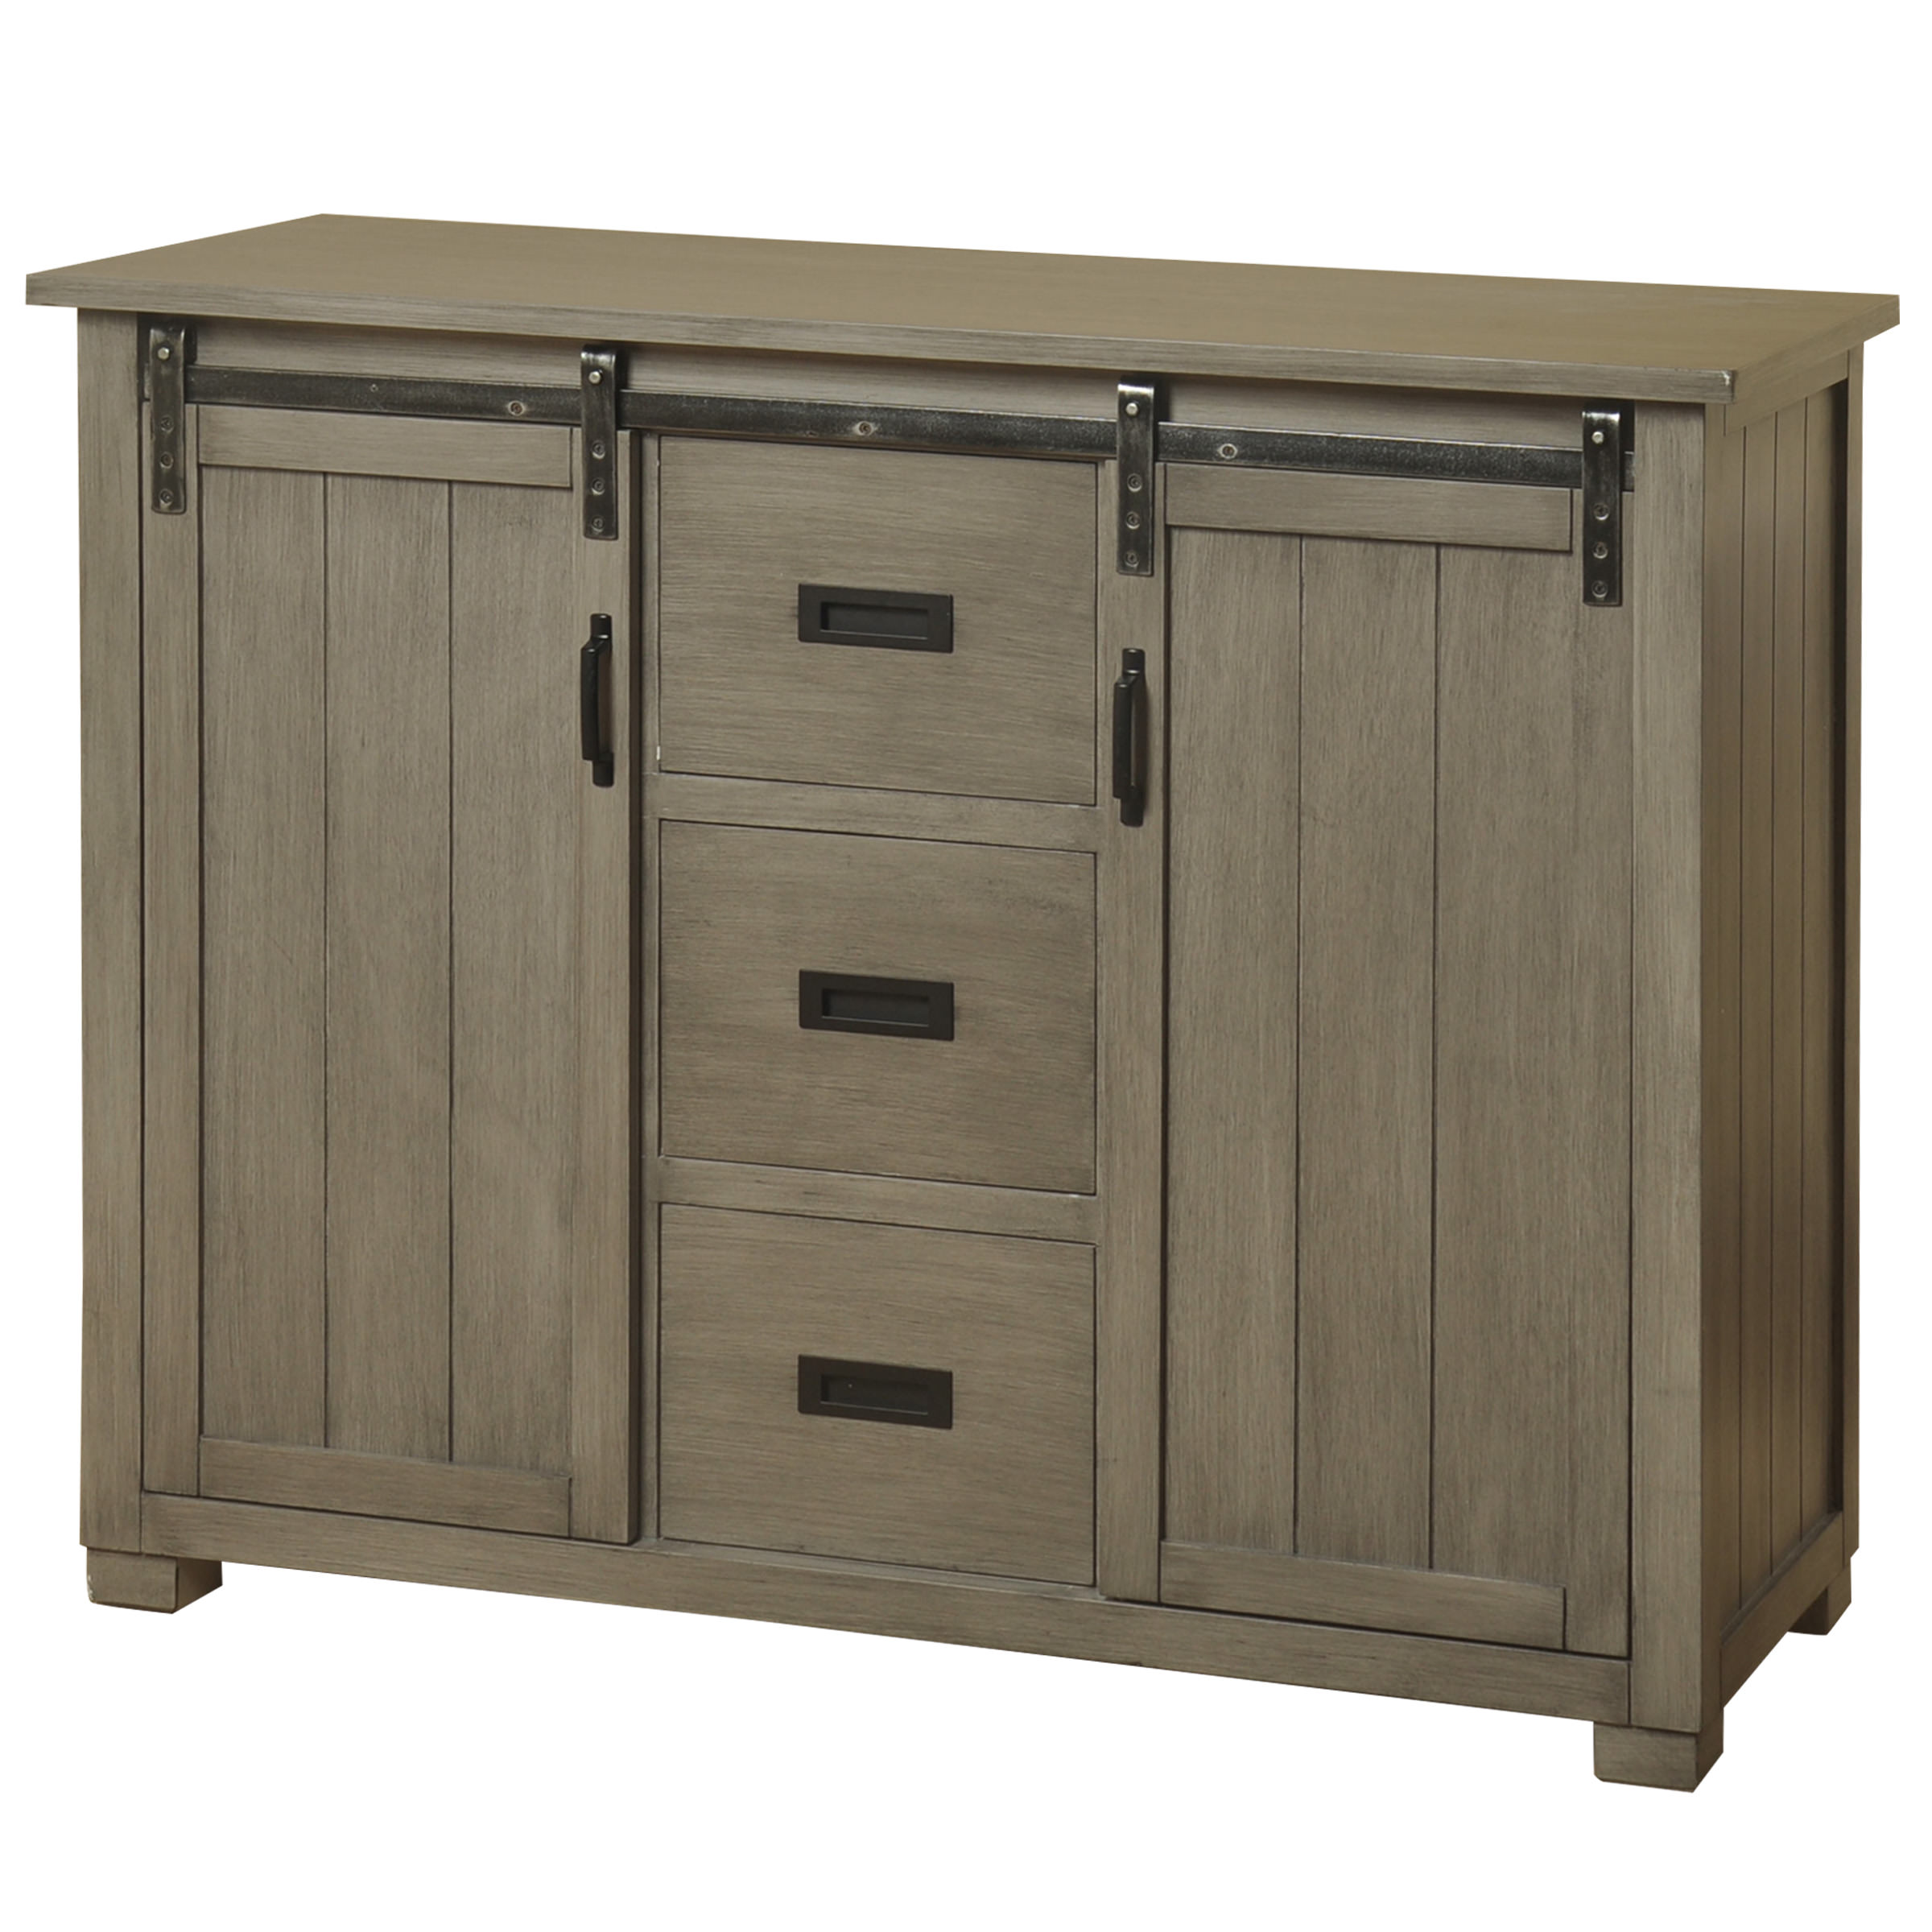 Barn Door TV Cabinet with Two Sliding Doors and Three Center Line Drawers - Slate Gray Finish